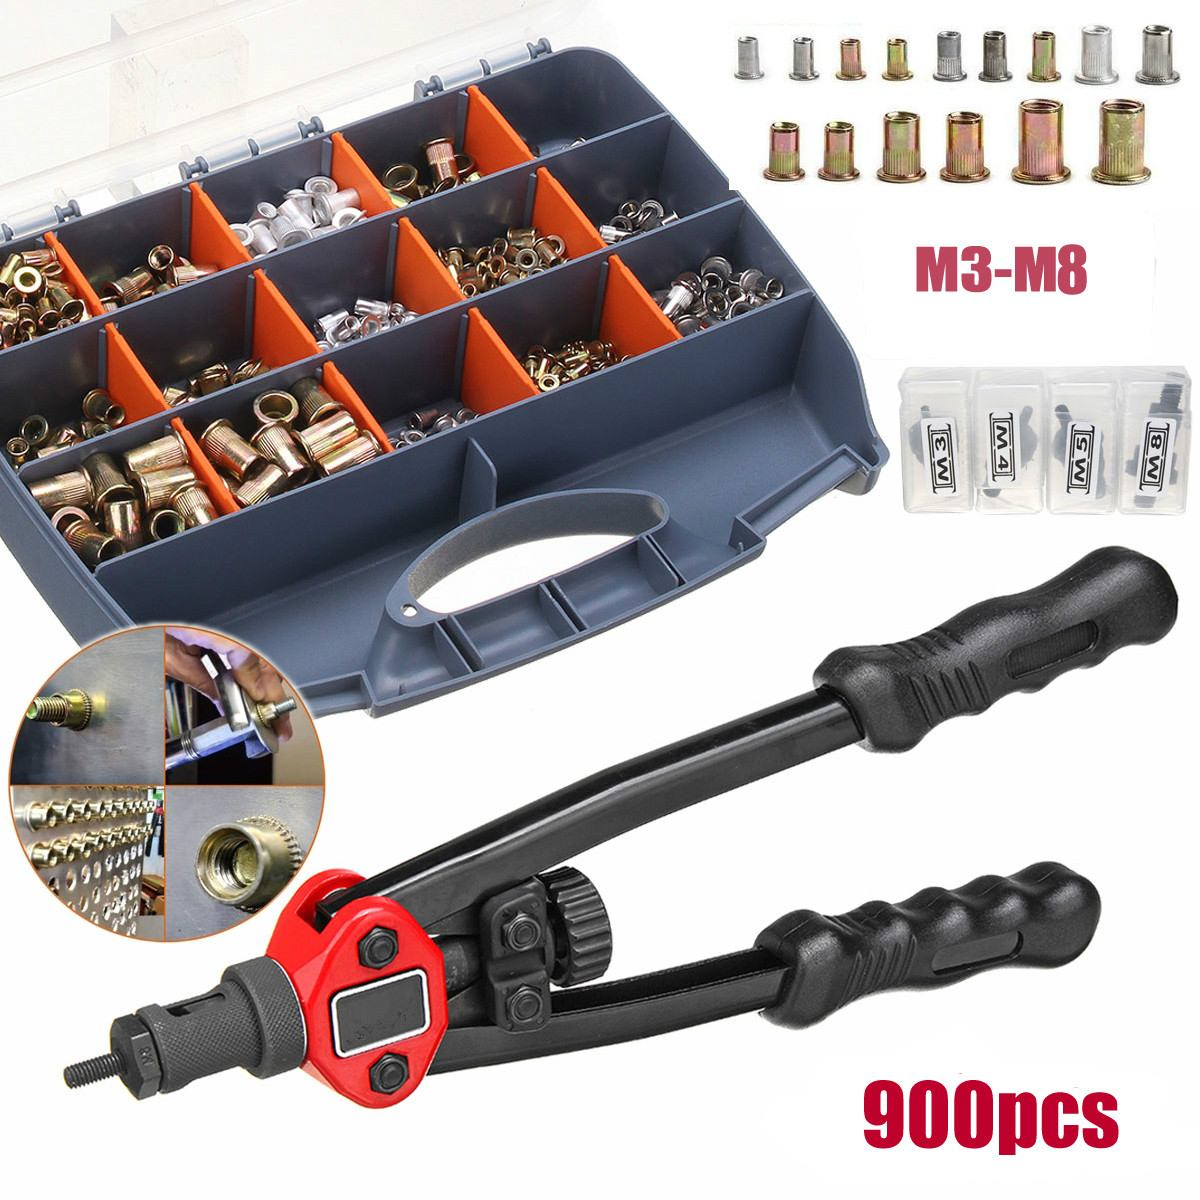 Hand Threaded Rivet Nuts Guns With Nuts 605 606 Double Insert Manual Riveter Riveting Rivnut Tool For M3/M4/M5/M6/M8/M10/M12 Nut